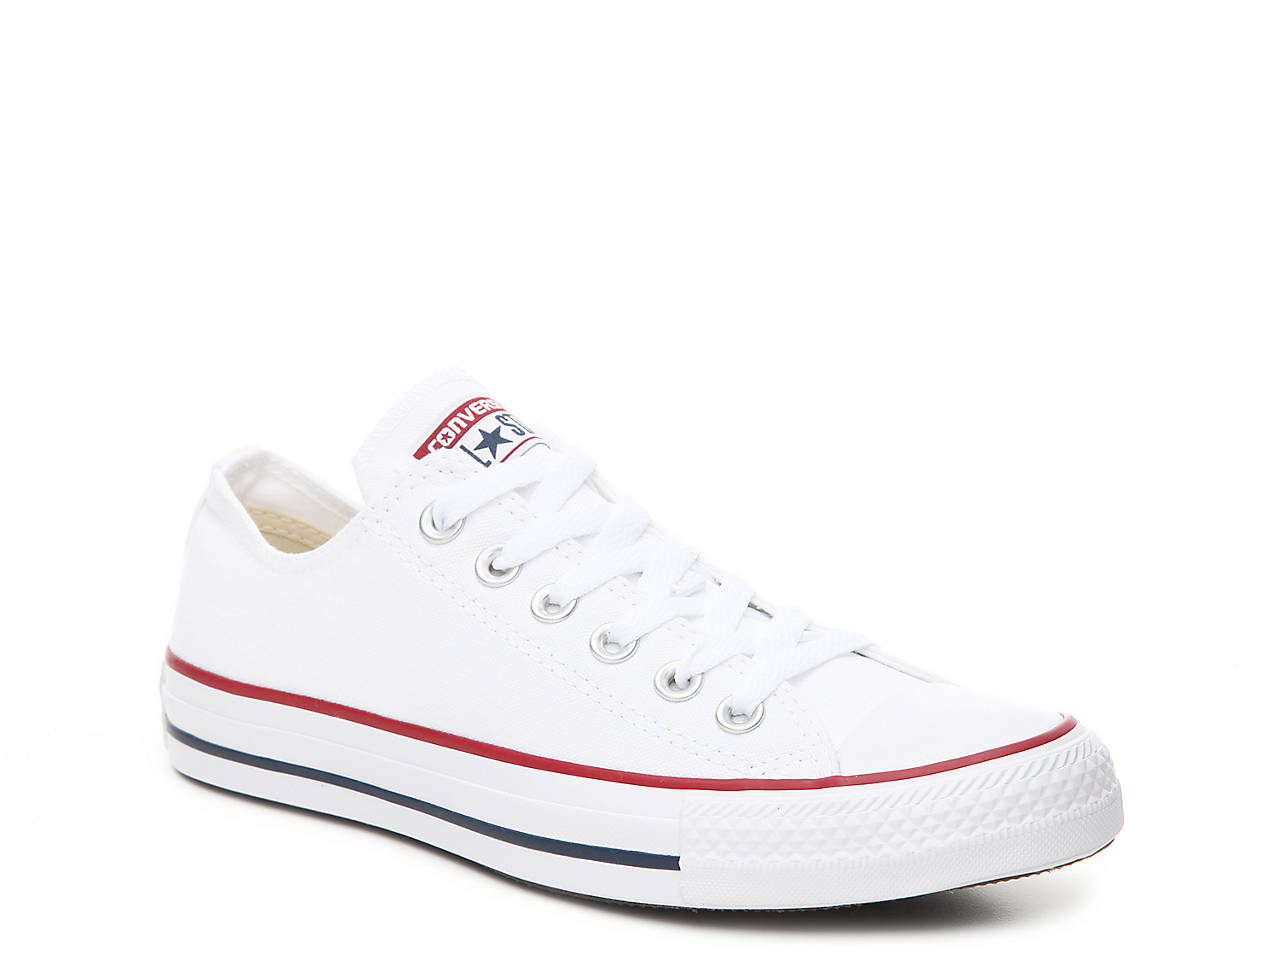 f2d2cf87de0c8a Converse All-Star High Tops   Sneakers